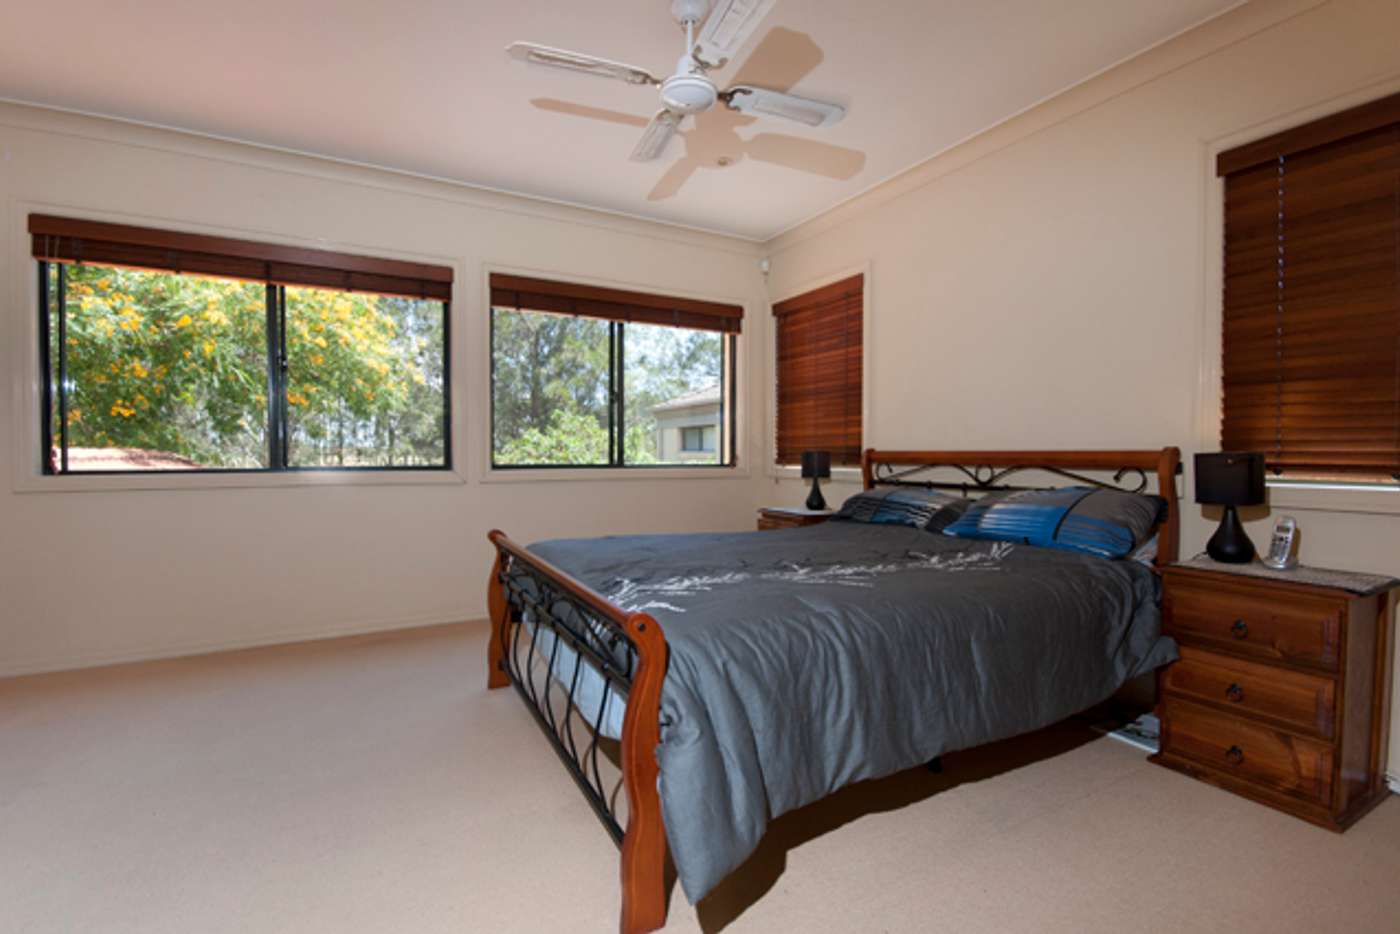 Sixth view of Homely house listing, 45 Ballybunyon Crescent, Hope Island QLD 4212